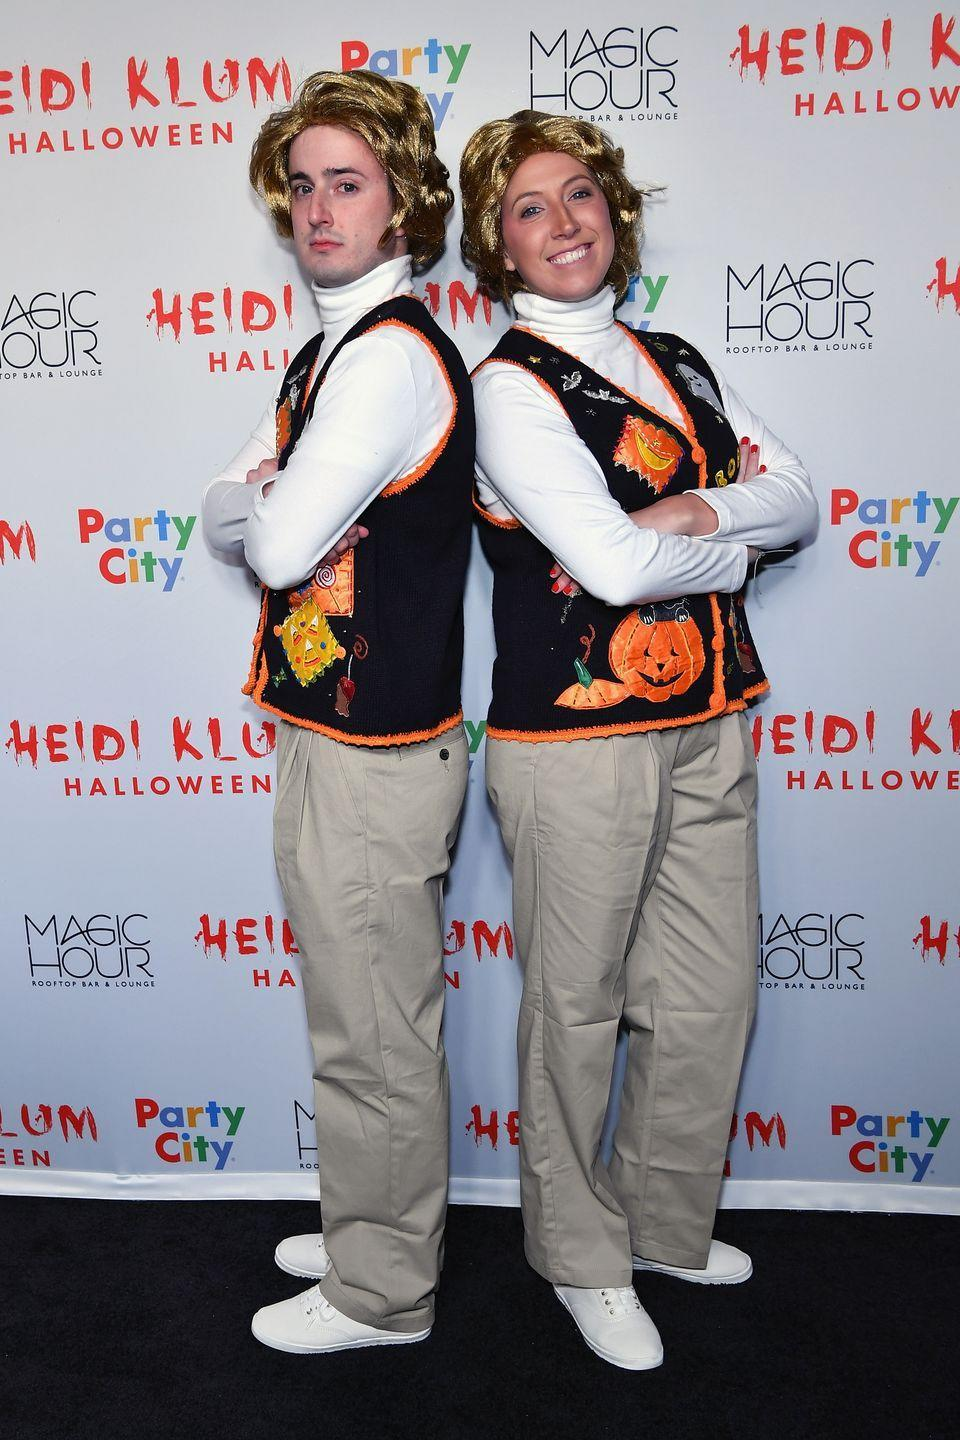 <p>Are you and your partner <em>Saturday Night Live</em> fans? If so, steal this creative costume from Bryce Dalzin and Erin Riley, who hit Heidi Klum's Halloween party in 2018 dressed as Garth and Kat from the hysterical show.</p>